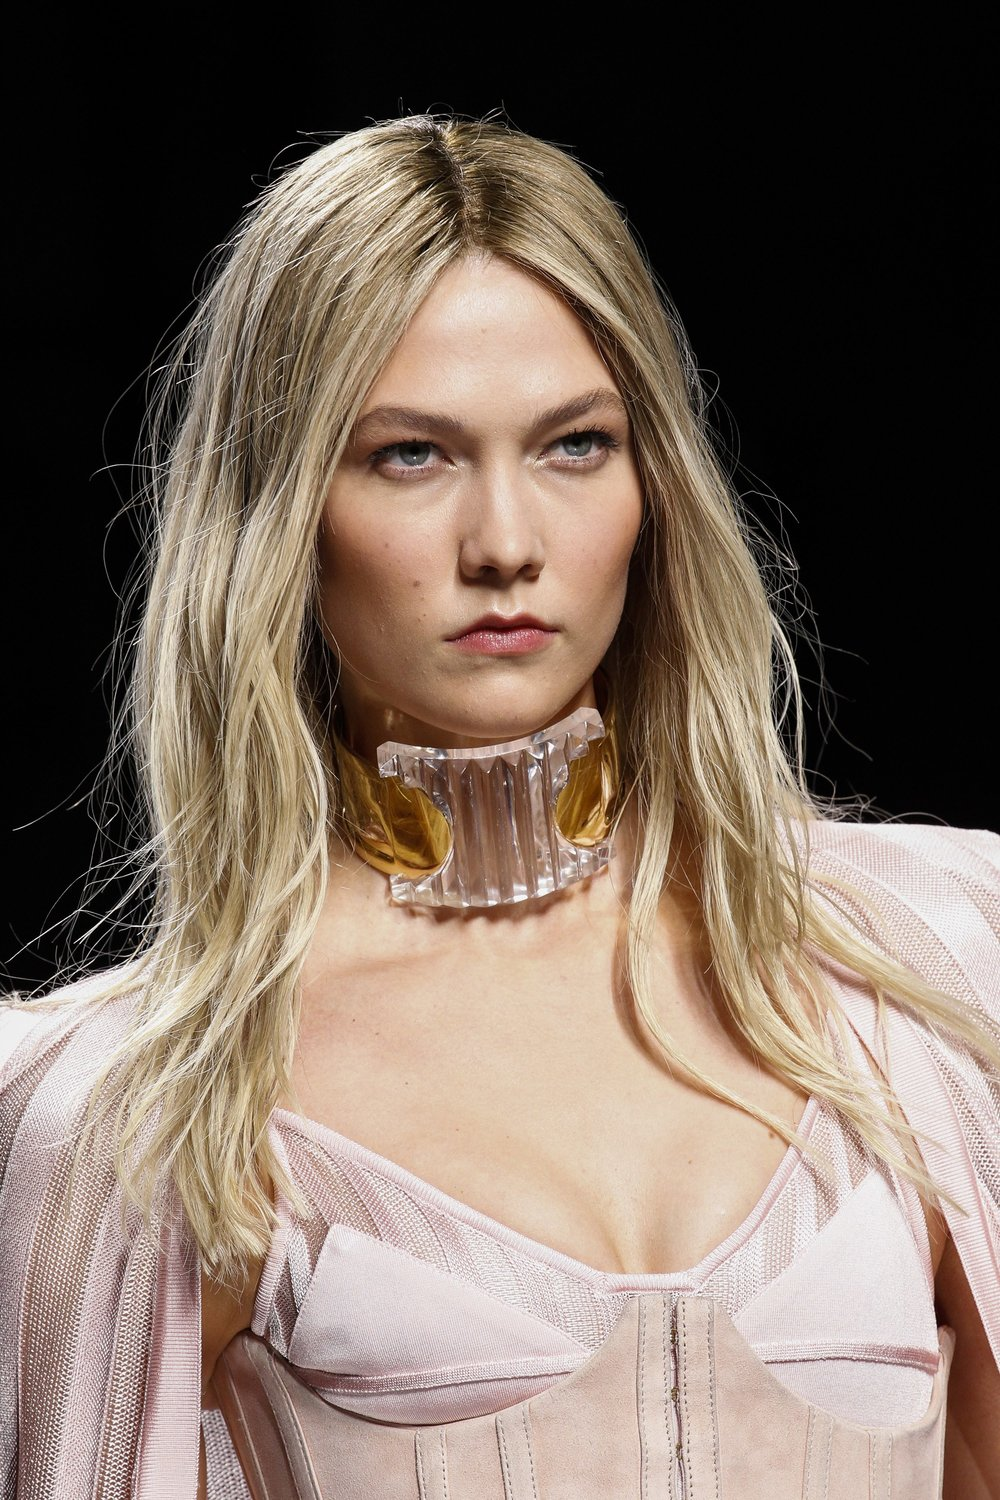 Crystal choker from Balmain's Fall 2016-17 collection. Photo source: Vogue Runway.